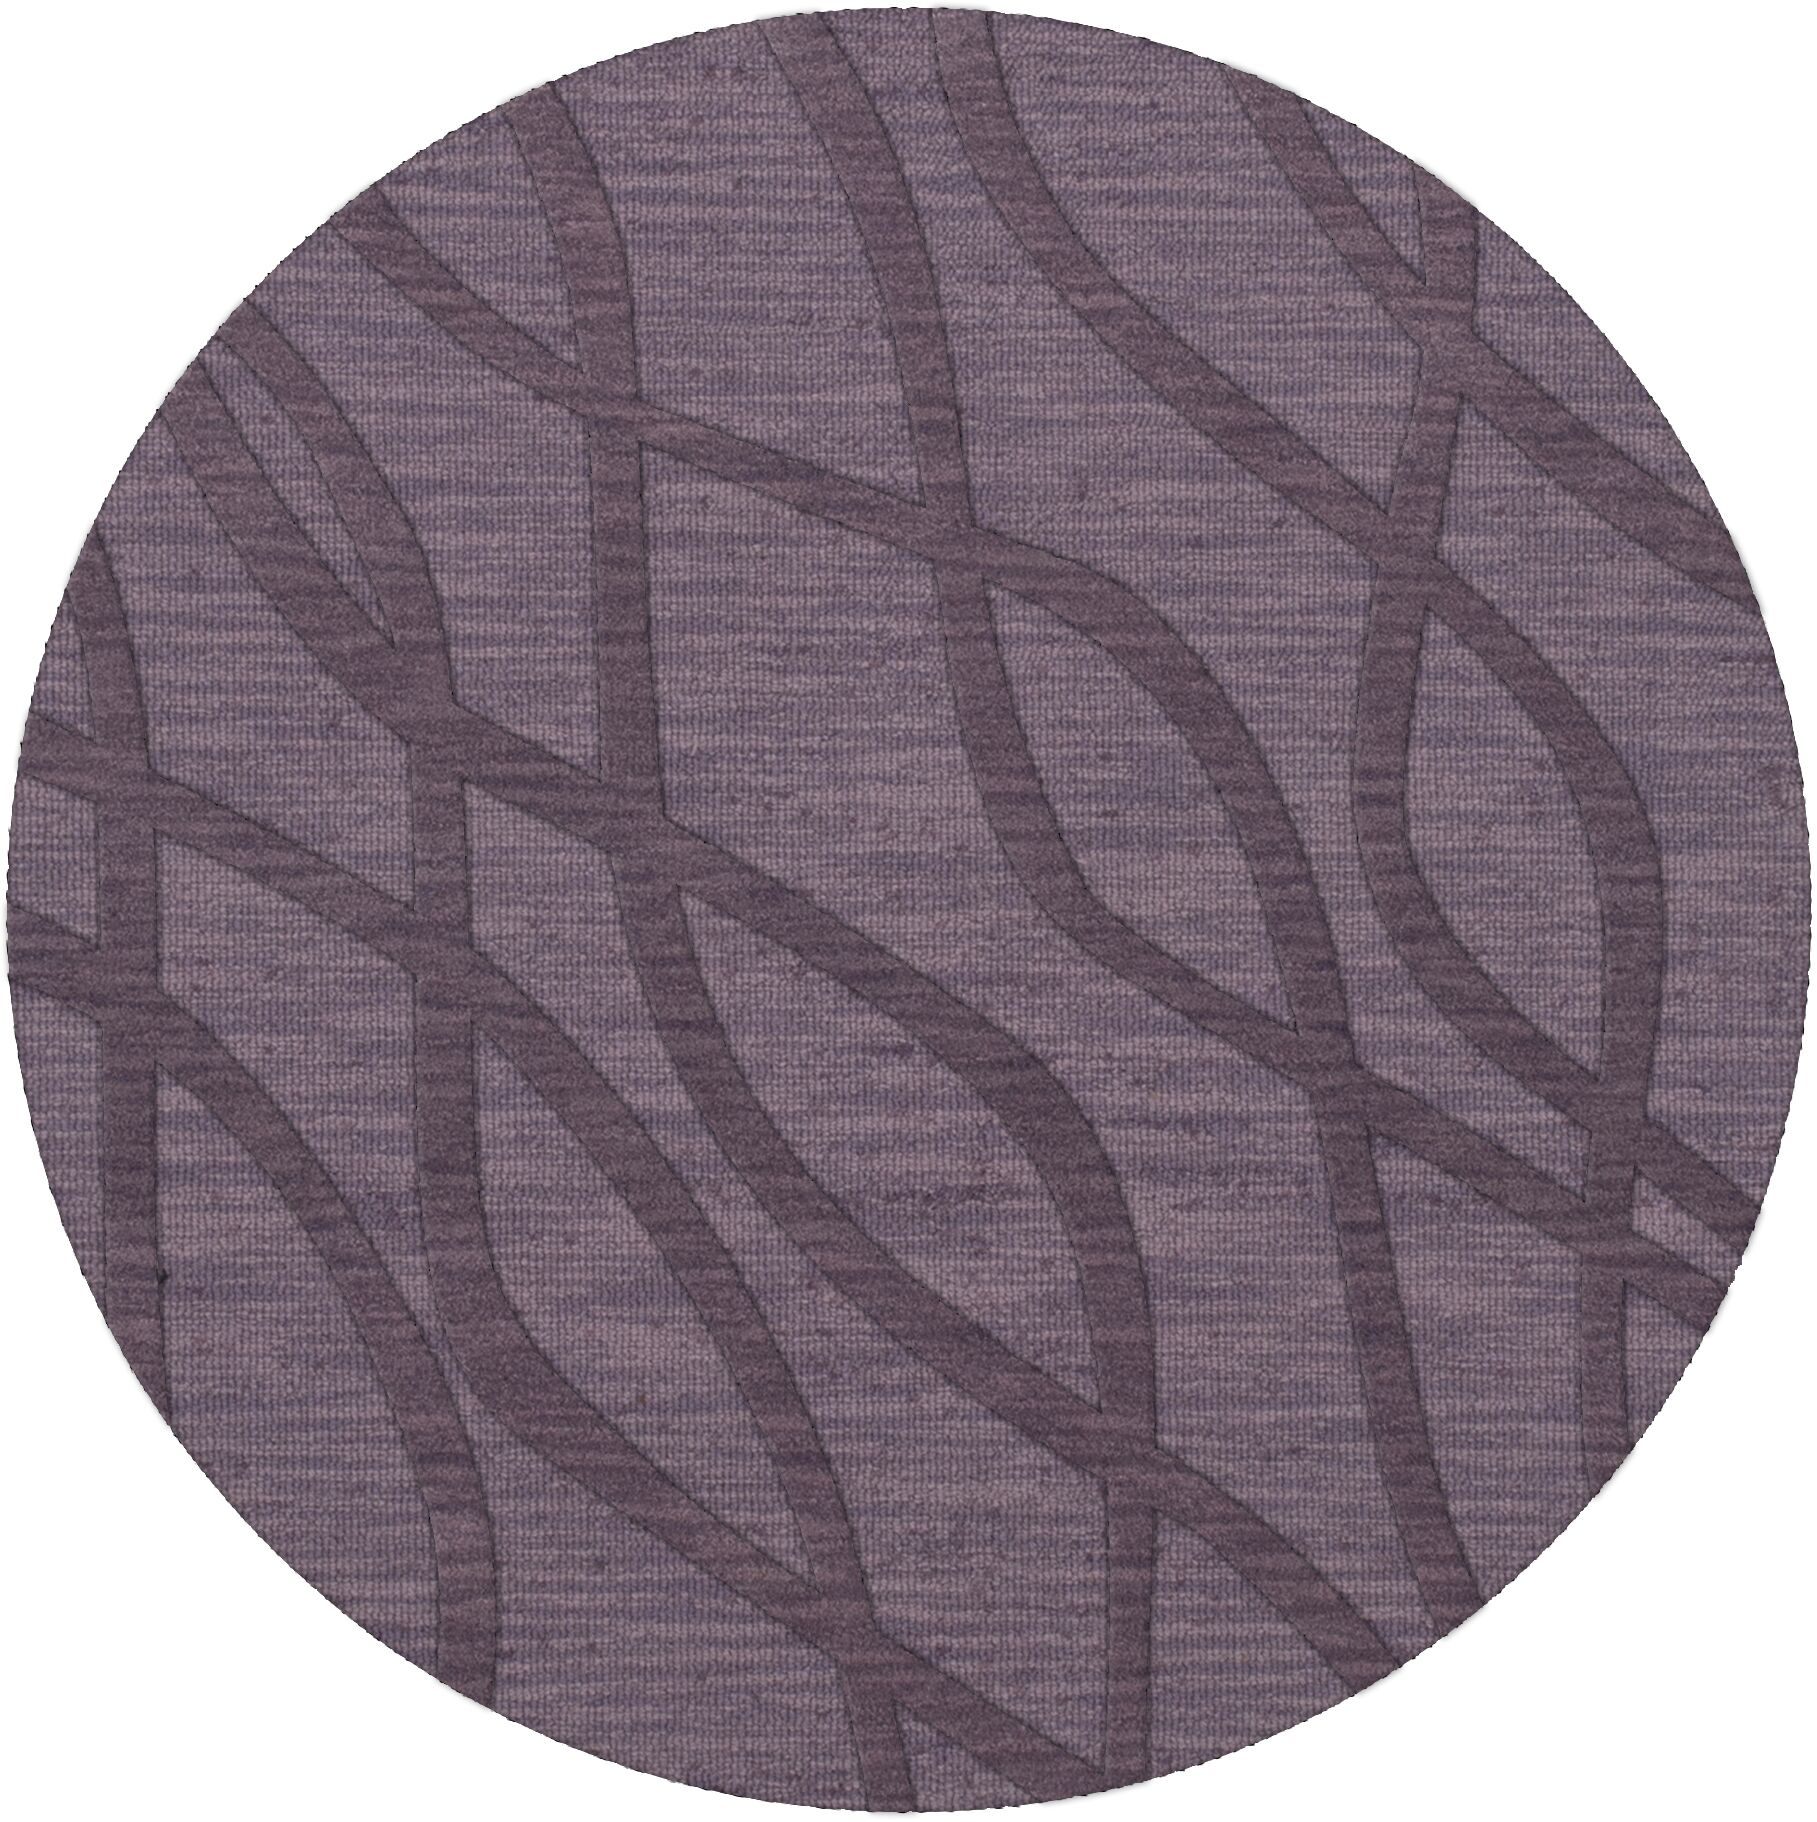 Dover Tufted Wool Viola Area Rug Rug Size: Round 4'